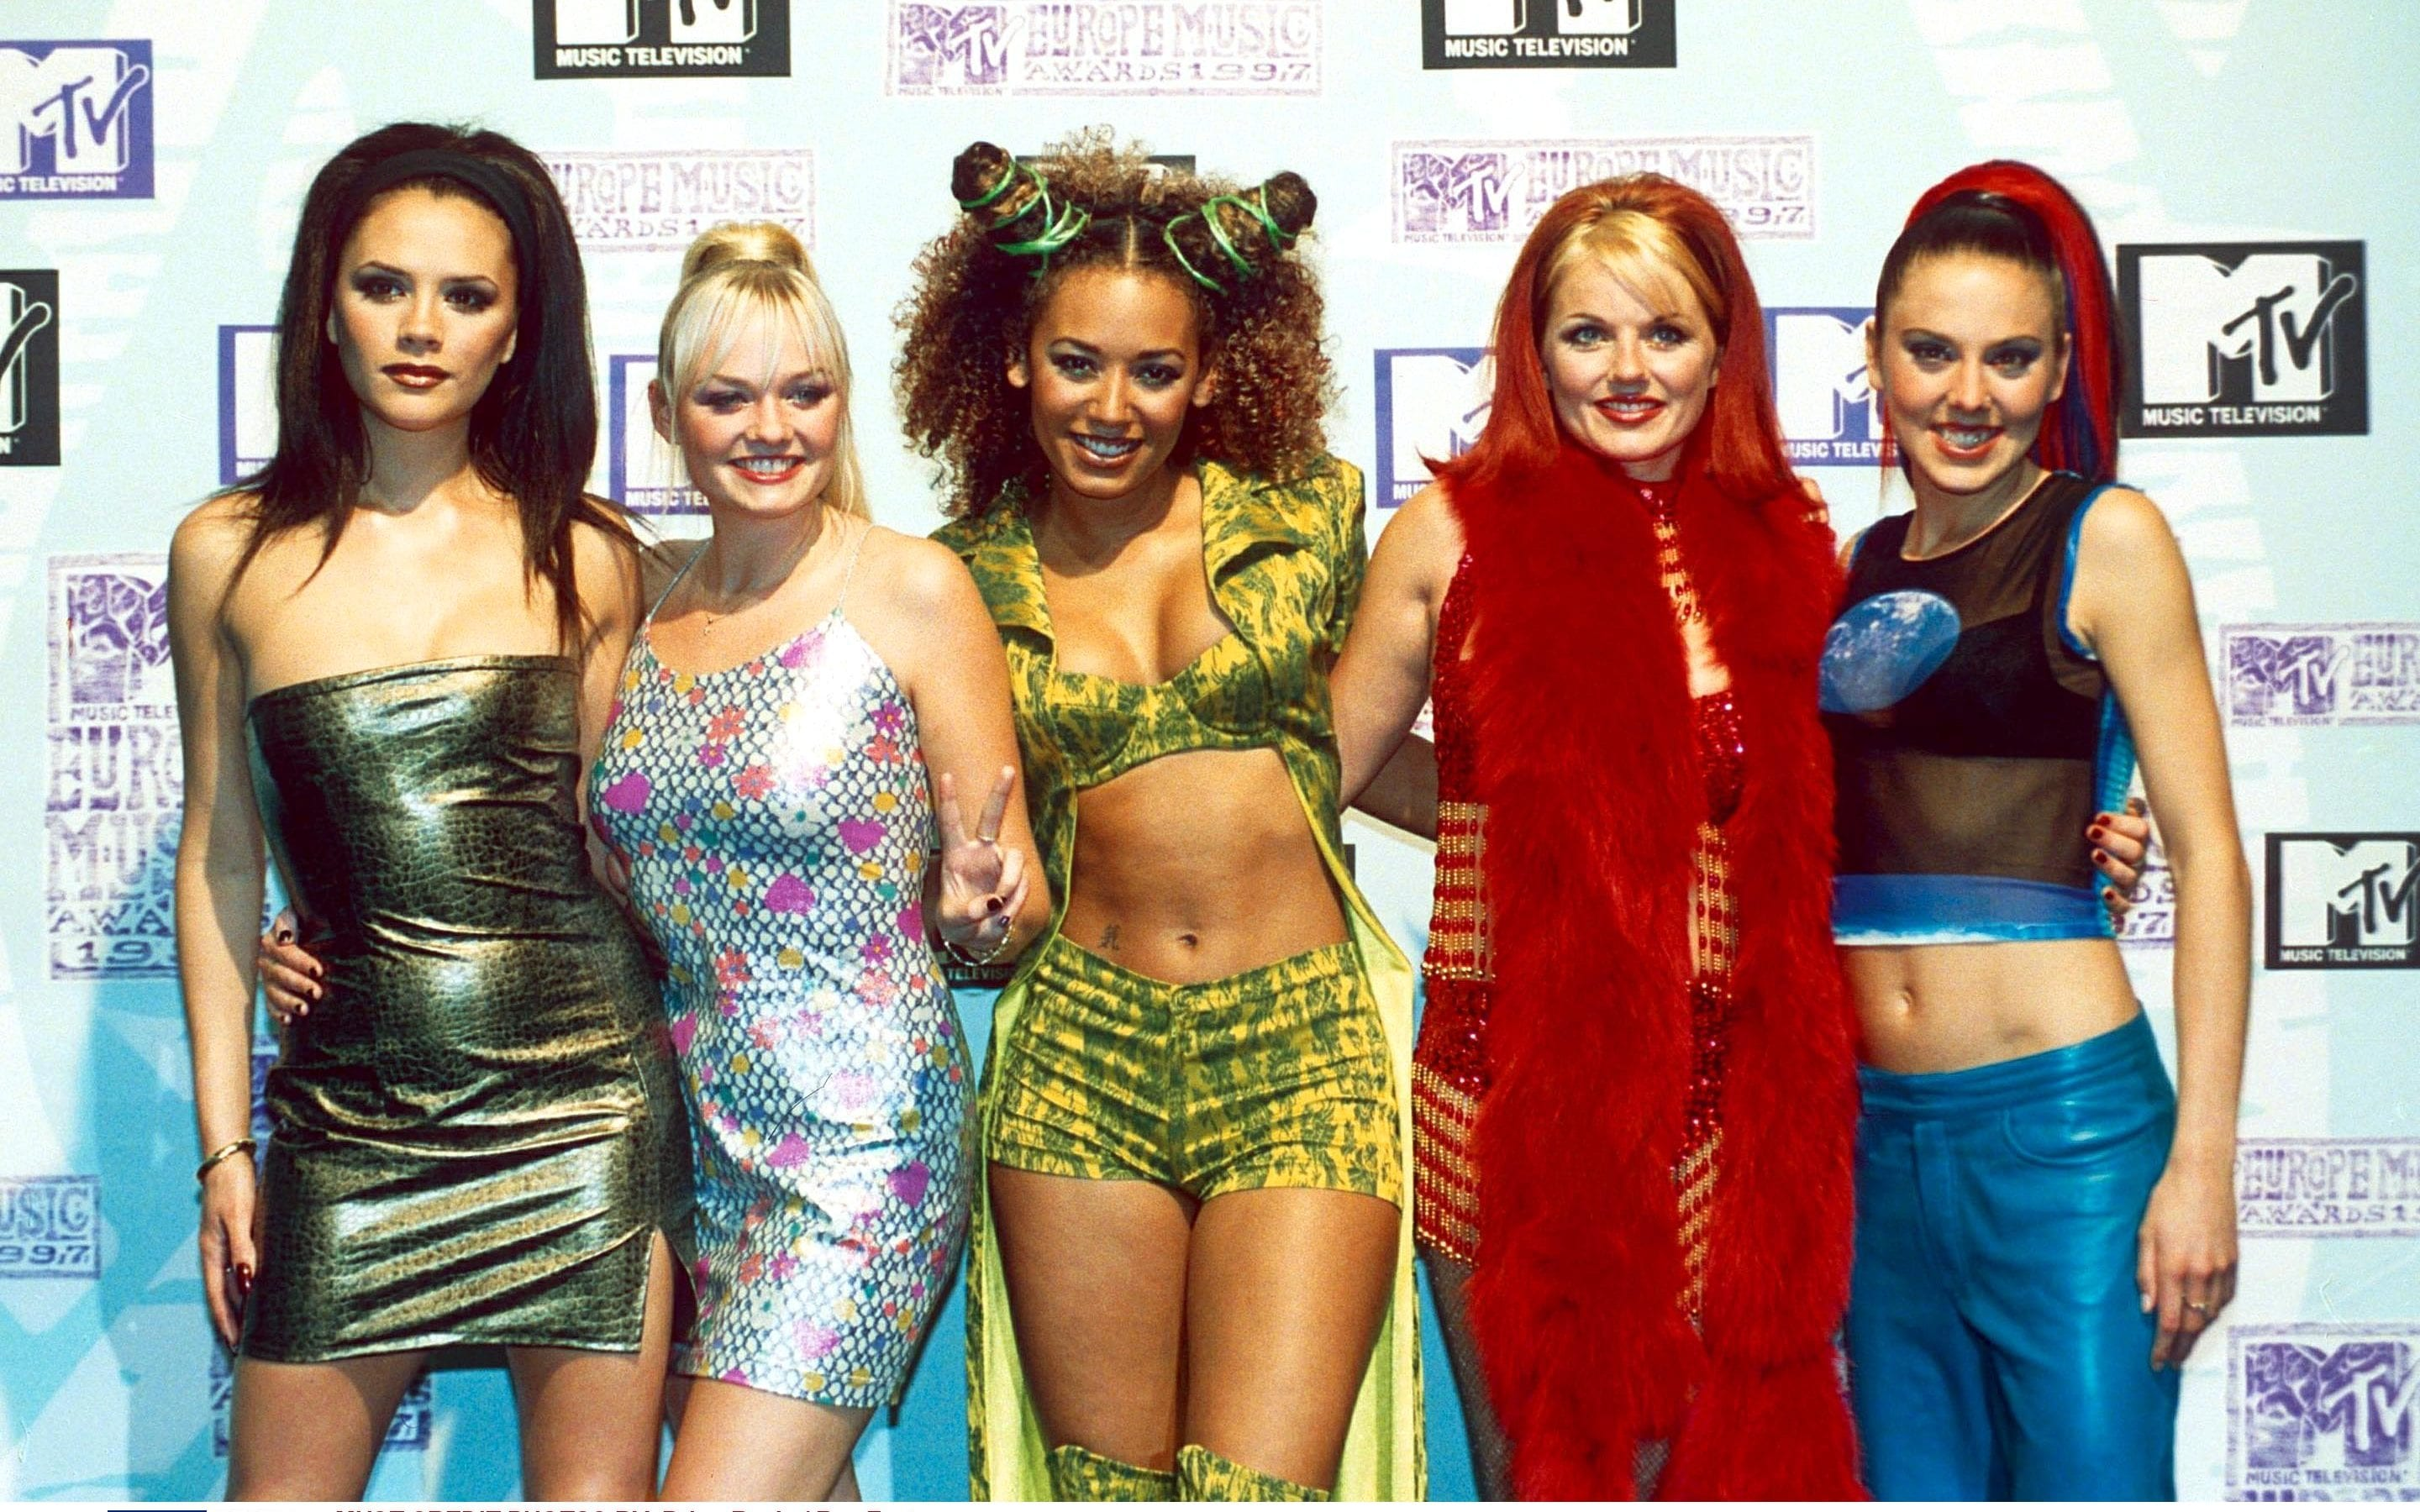 Mel B   The Spice Girls will be doing something at some point  The Spice Girls in 1997